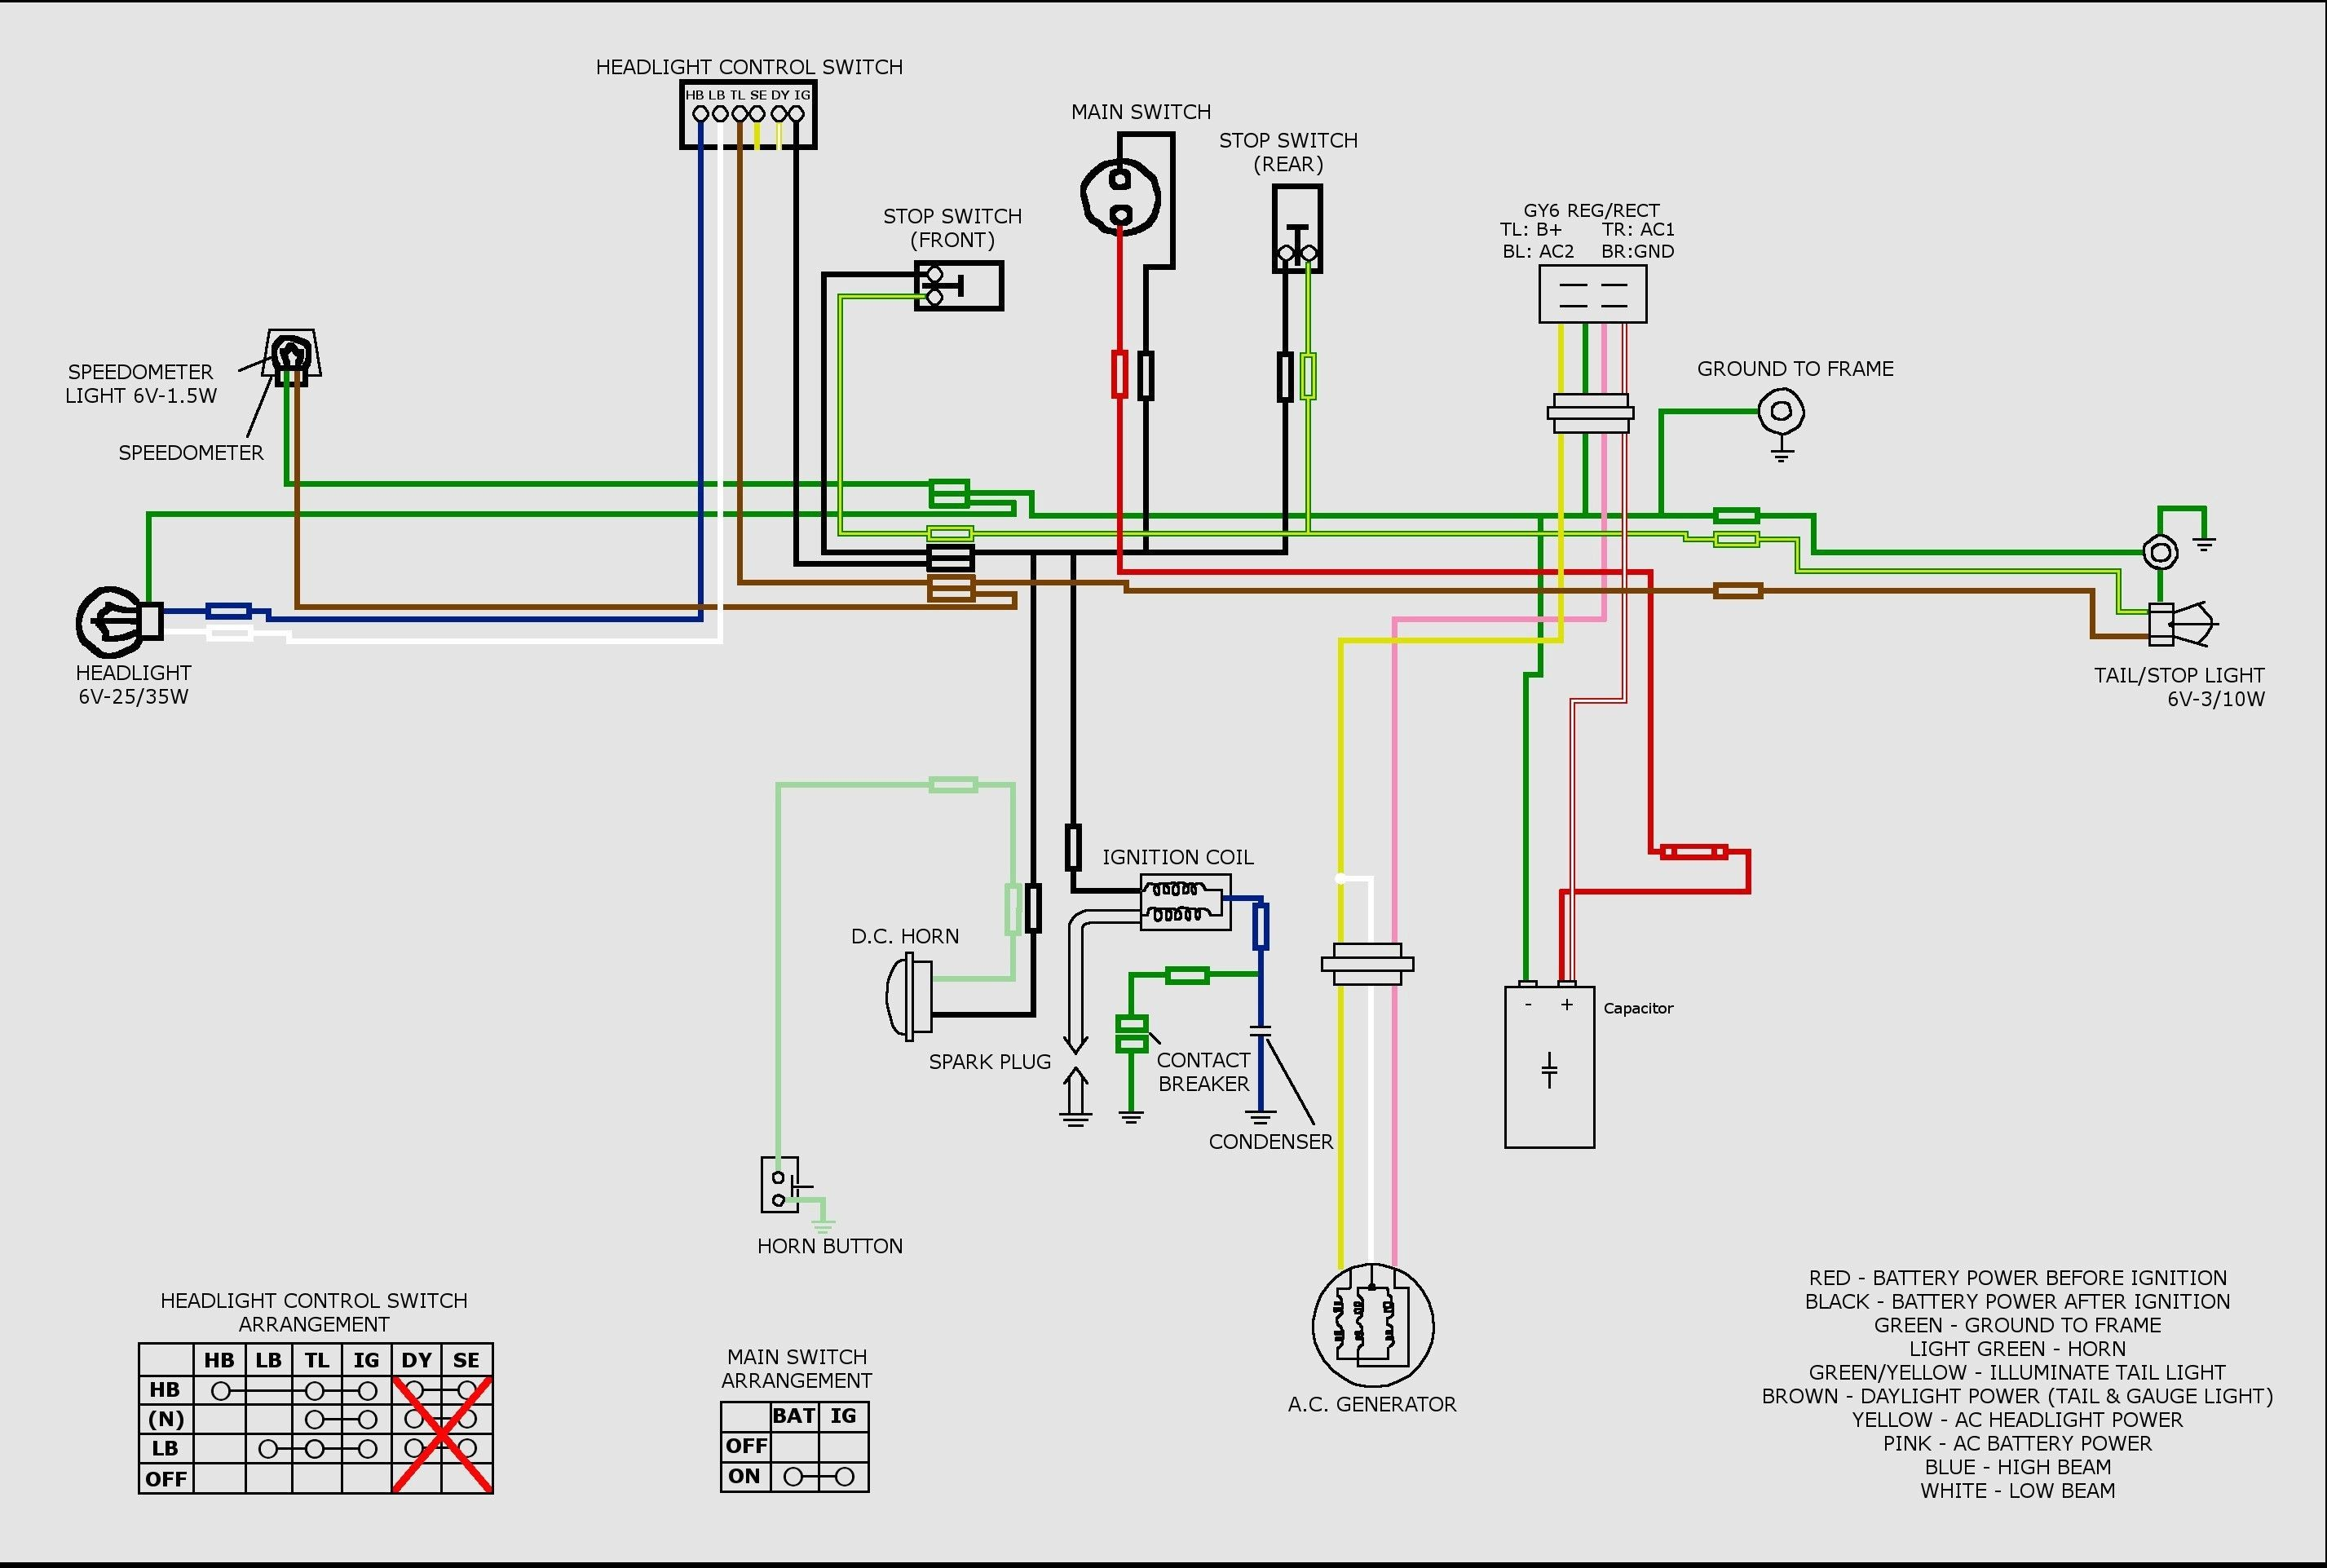 Wiring Diagram for A Chinese 110 atv Gy6 Wiring Diagram Awesome 150cc Gy6 Wiring Diagram within Of Wiring Diagram for A Chinese 110 atv